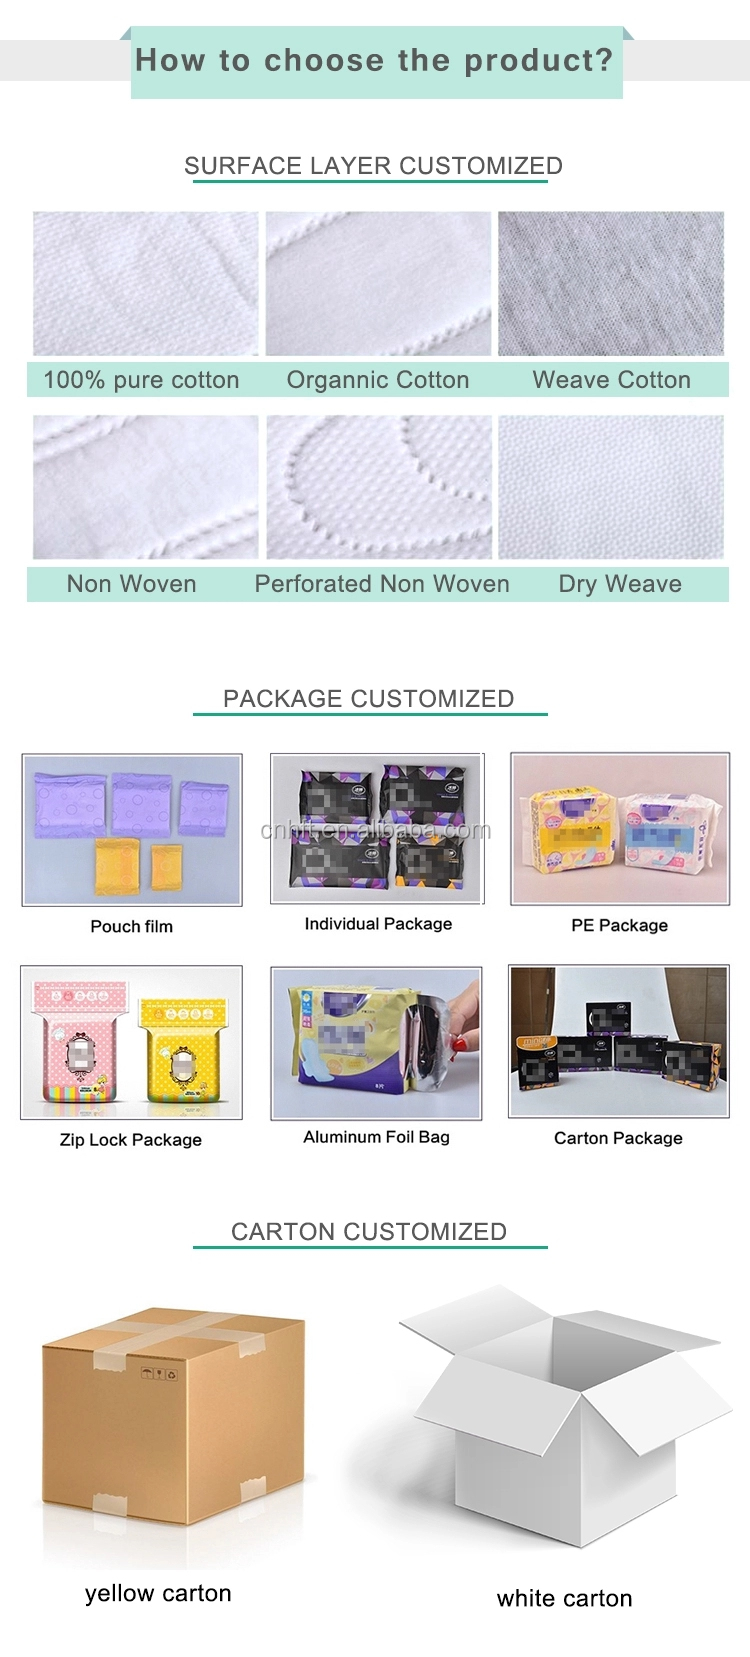 Cotton Winged Regular Super Absorbent Disposable Anion Shymoon Sanitary Napkins